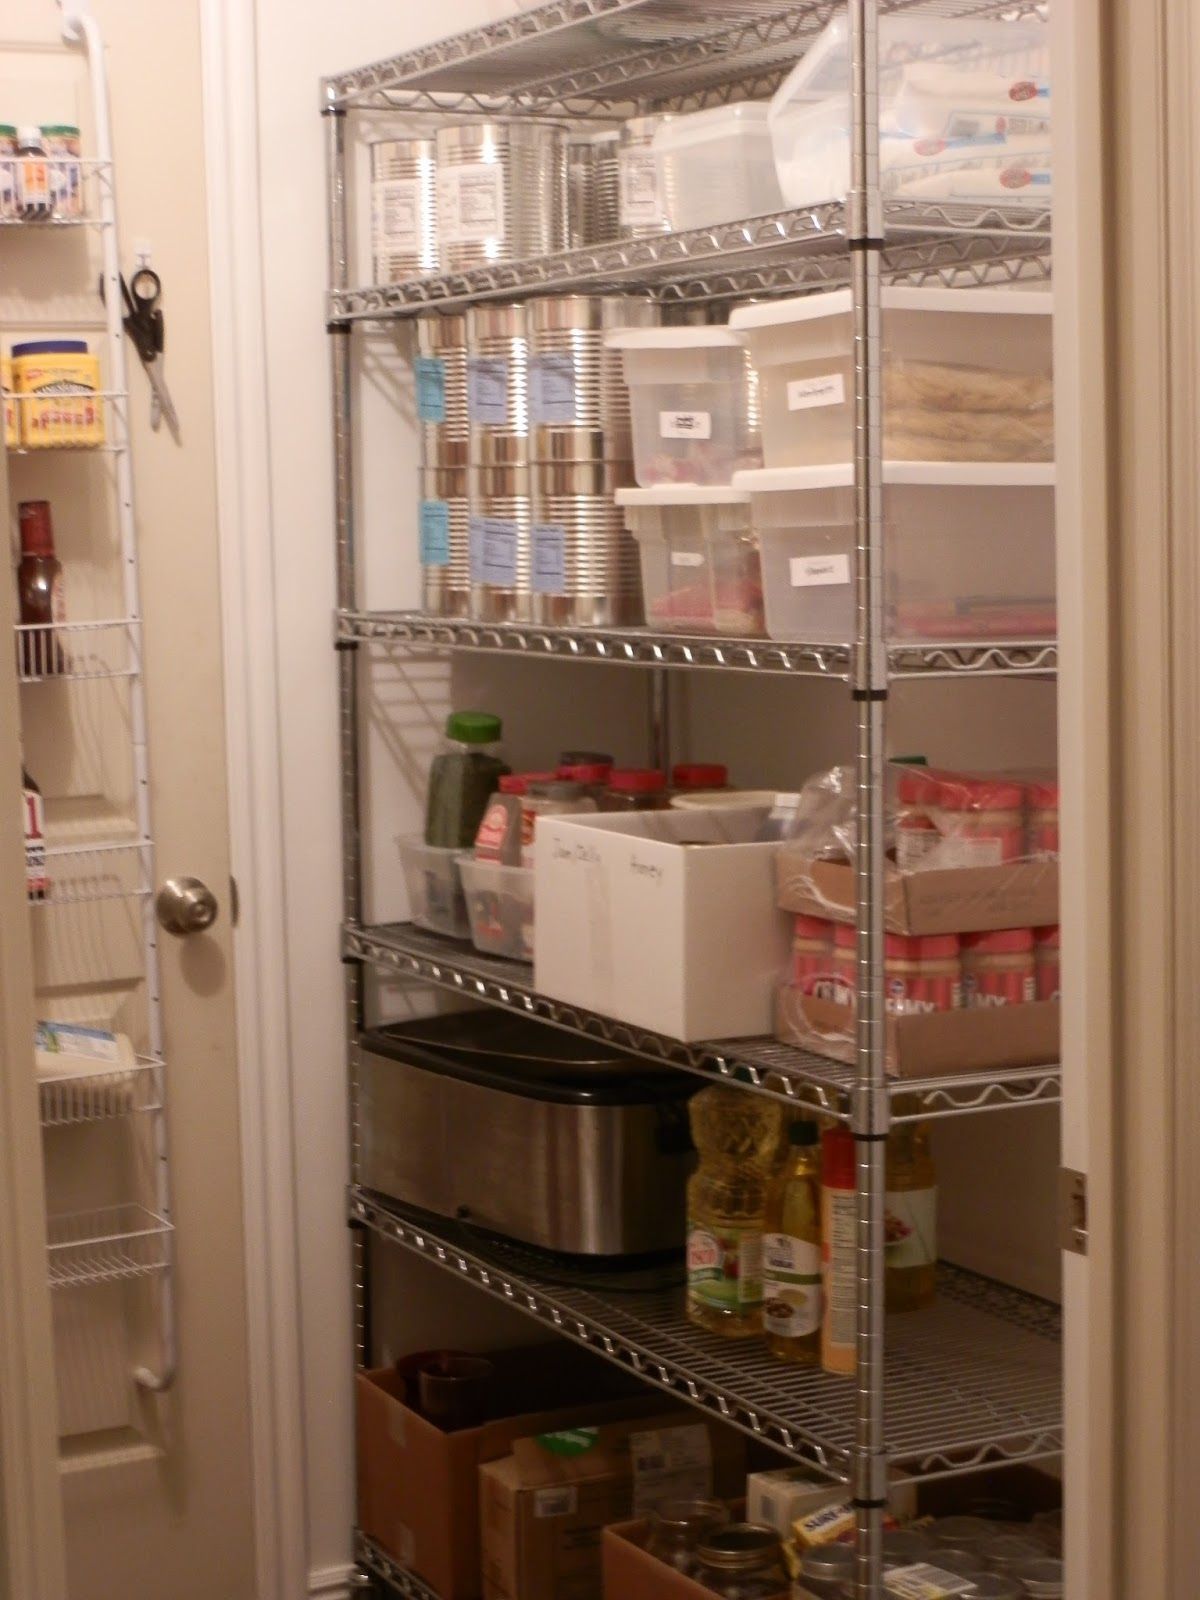 August 20 2013 & Prepared LDS Family: Pictures of My Food Storage Room